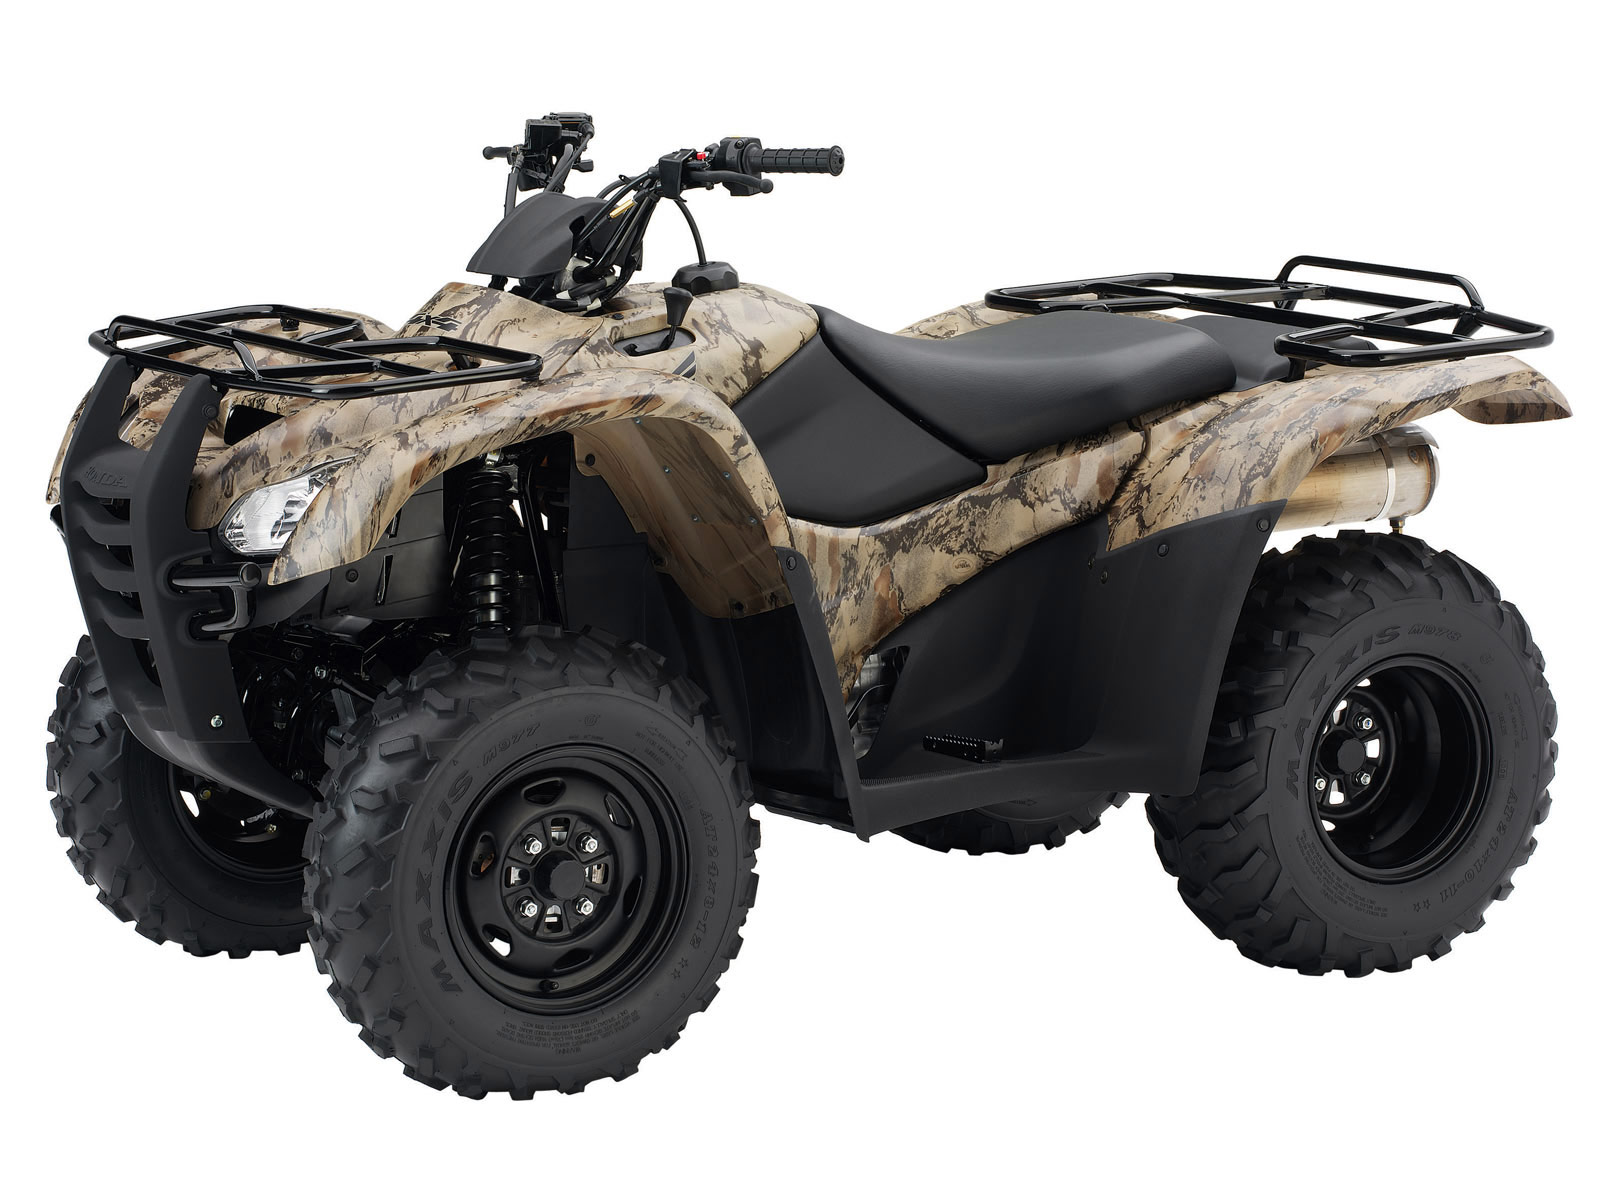 2008 Honda Fourtrax Rancher 4x4 Atv Pictures Specs